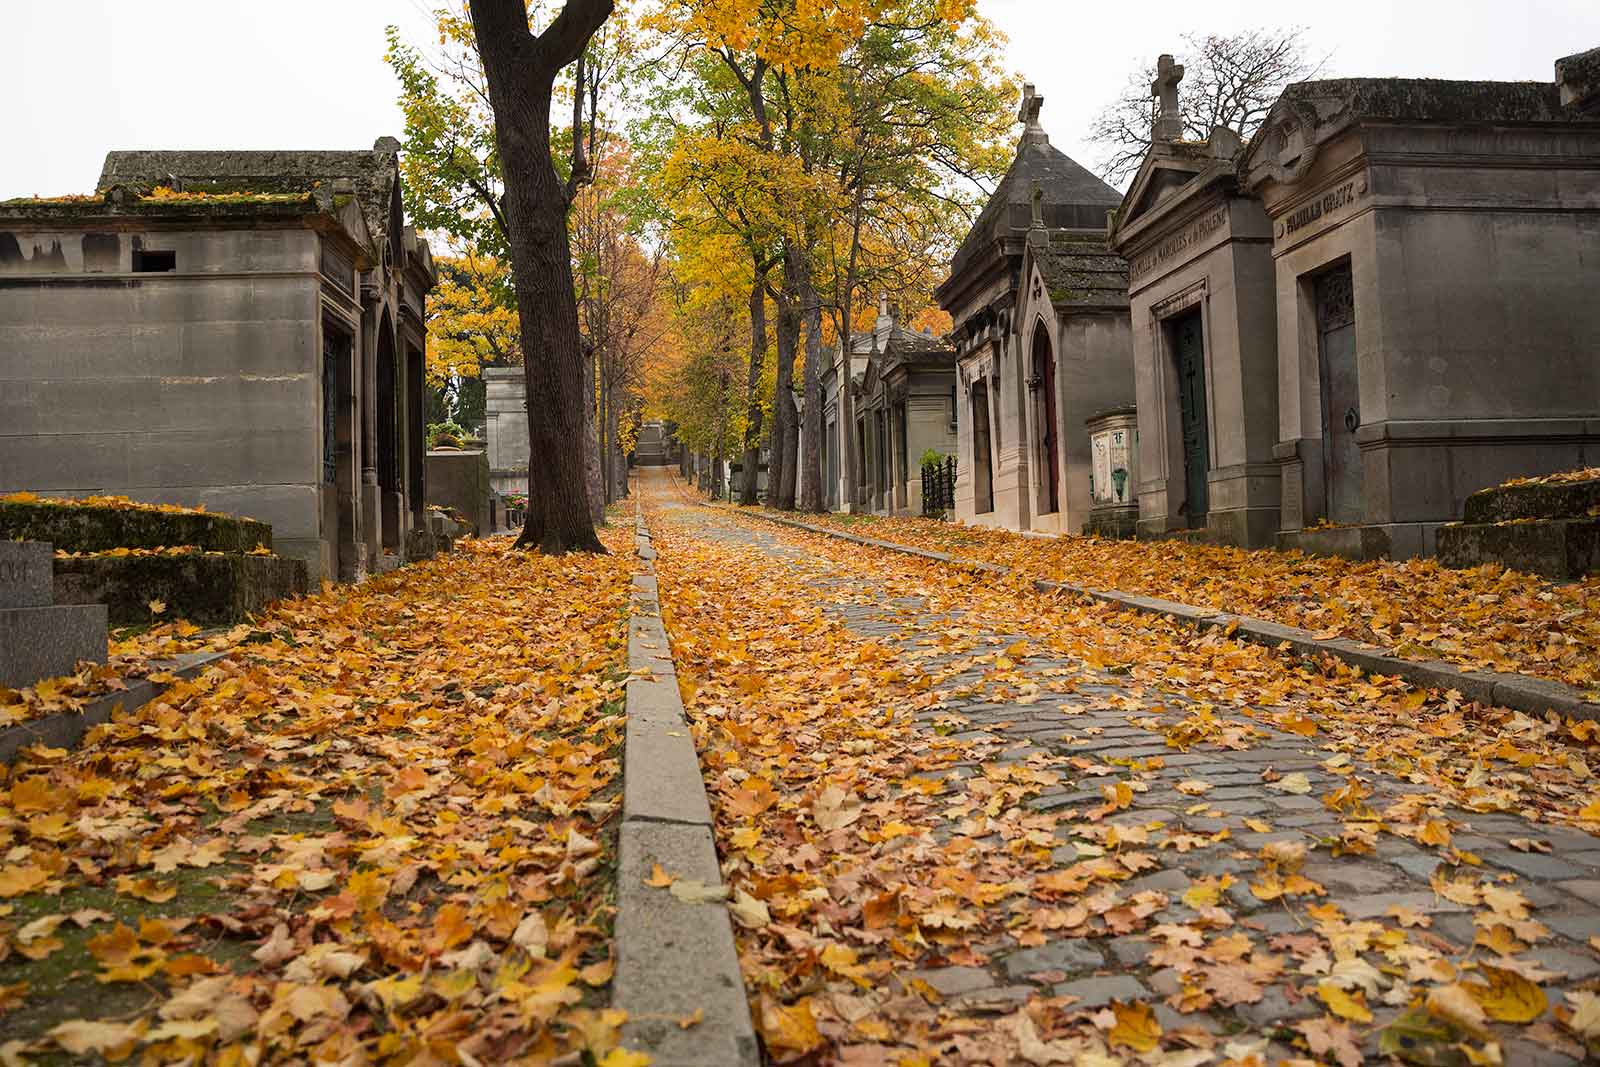 Pere Lachaise was the first garden cemetery, laid out in the 20th arrondissement of Paris. It marked a shift in burial practices and rapidly became the model for similar style cemeteries throughout Europe.